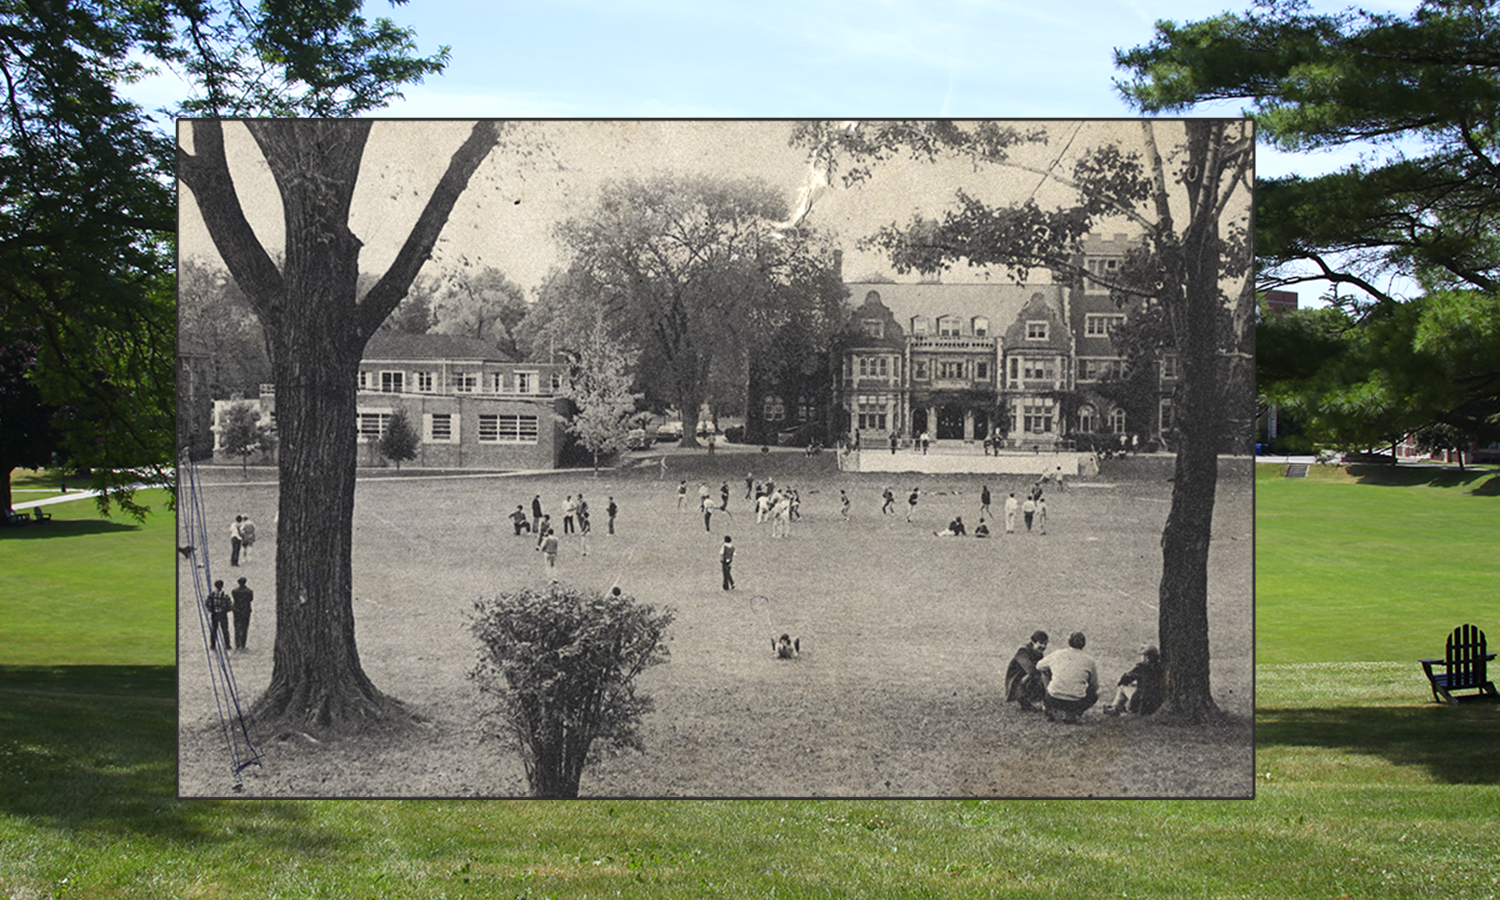 The Quad, whether in the 1960s or the 2010s, is always a popular place to relax on a sunny day.